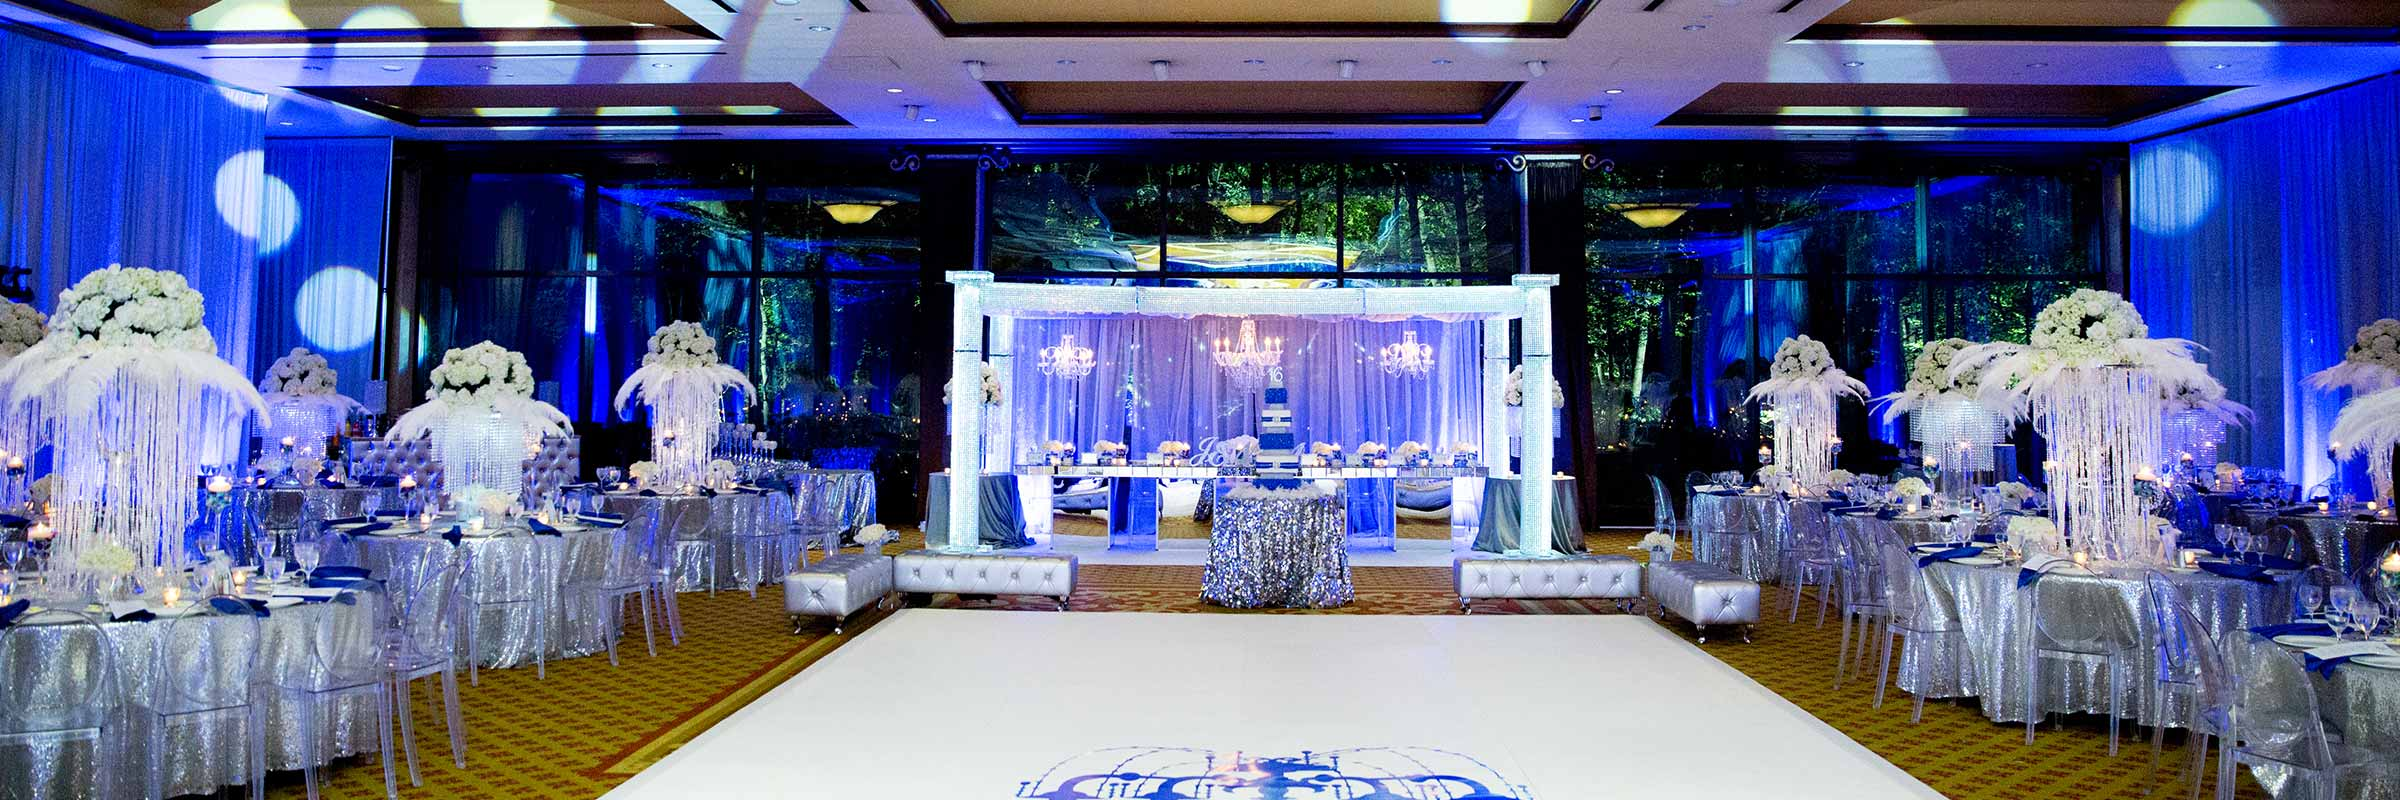 Elegant Custom Sweet Sixteen Birthday Party Event